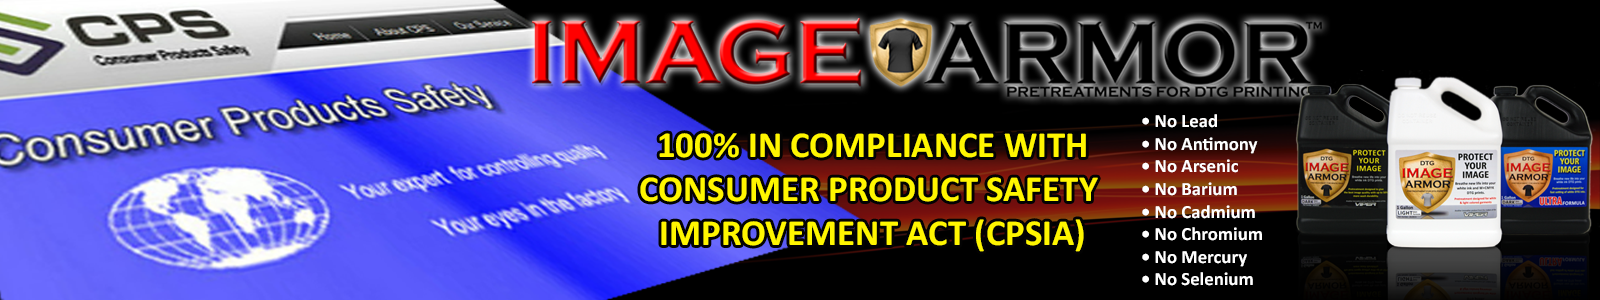 Image Armor Compliant with the CPSIA